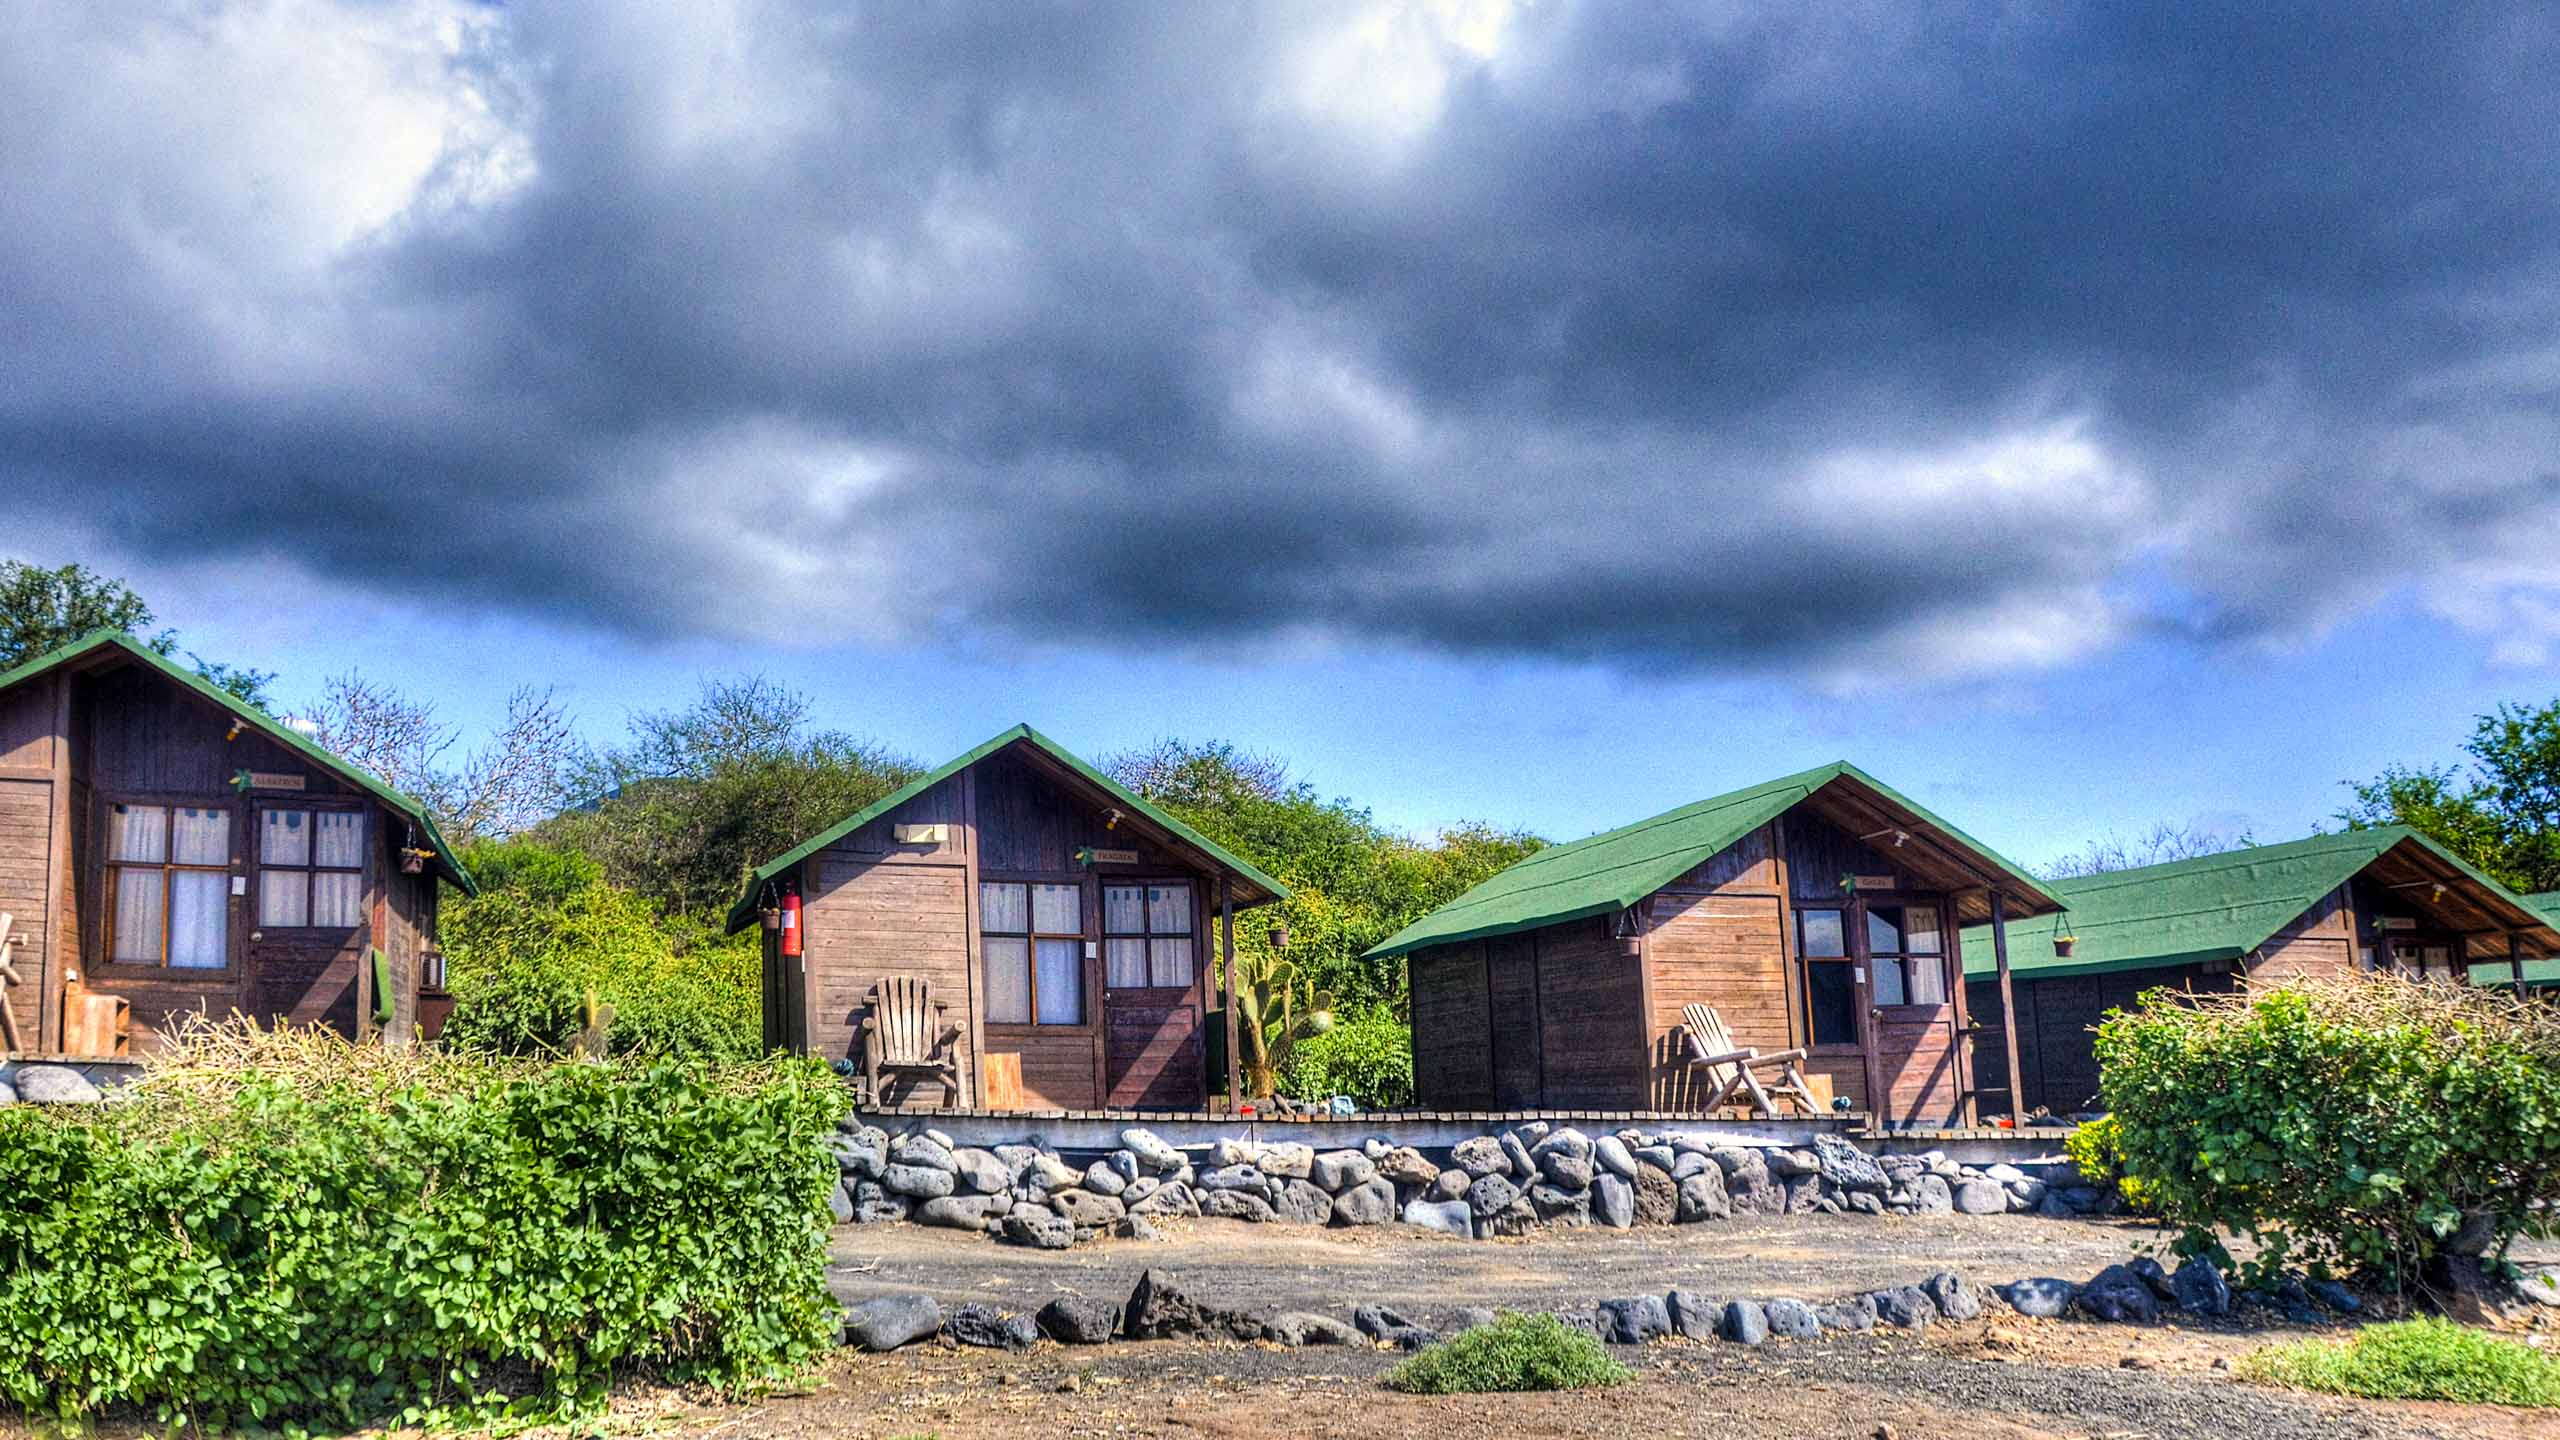 Line of cabins in Galapagos